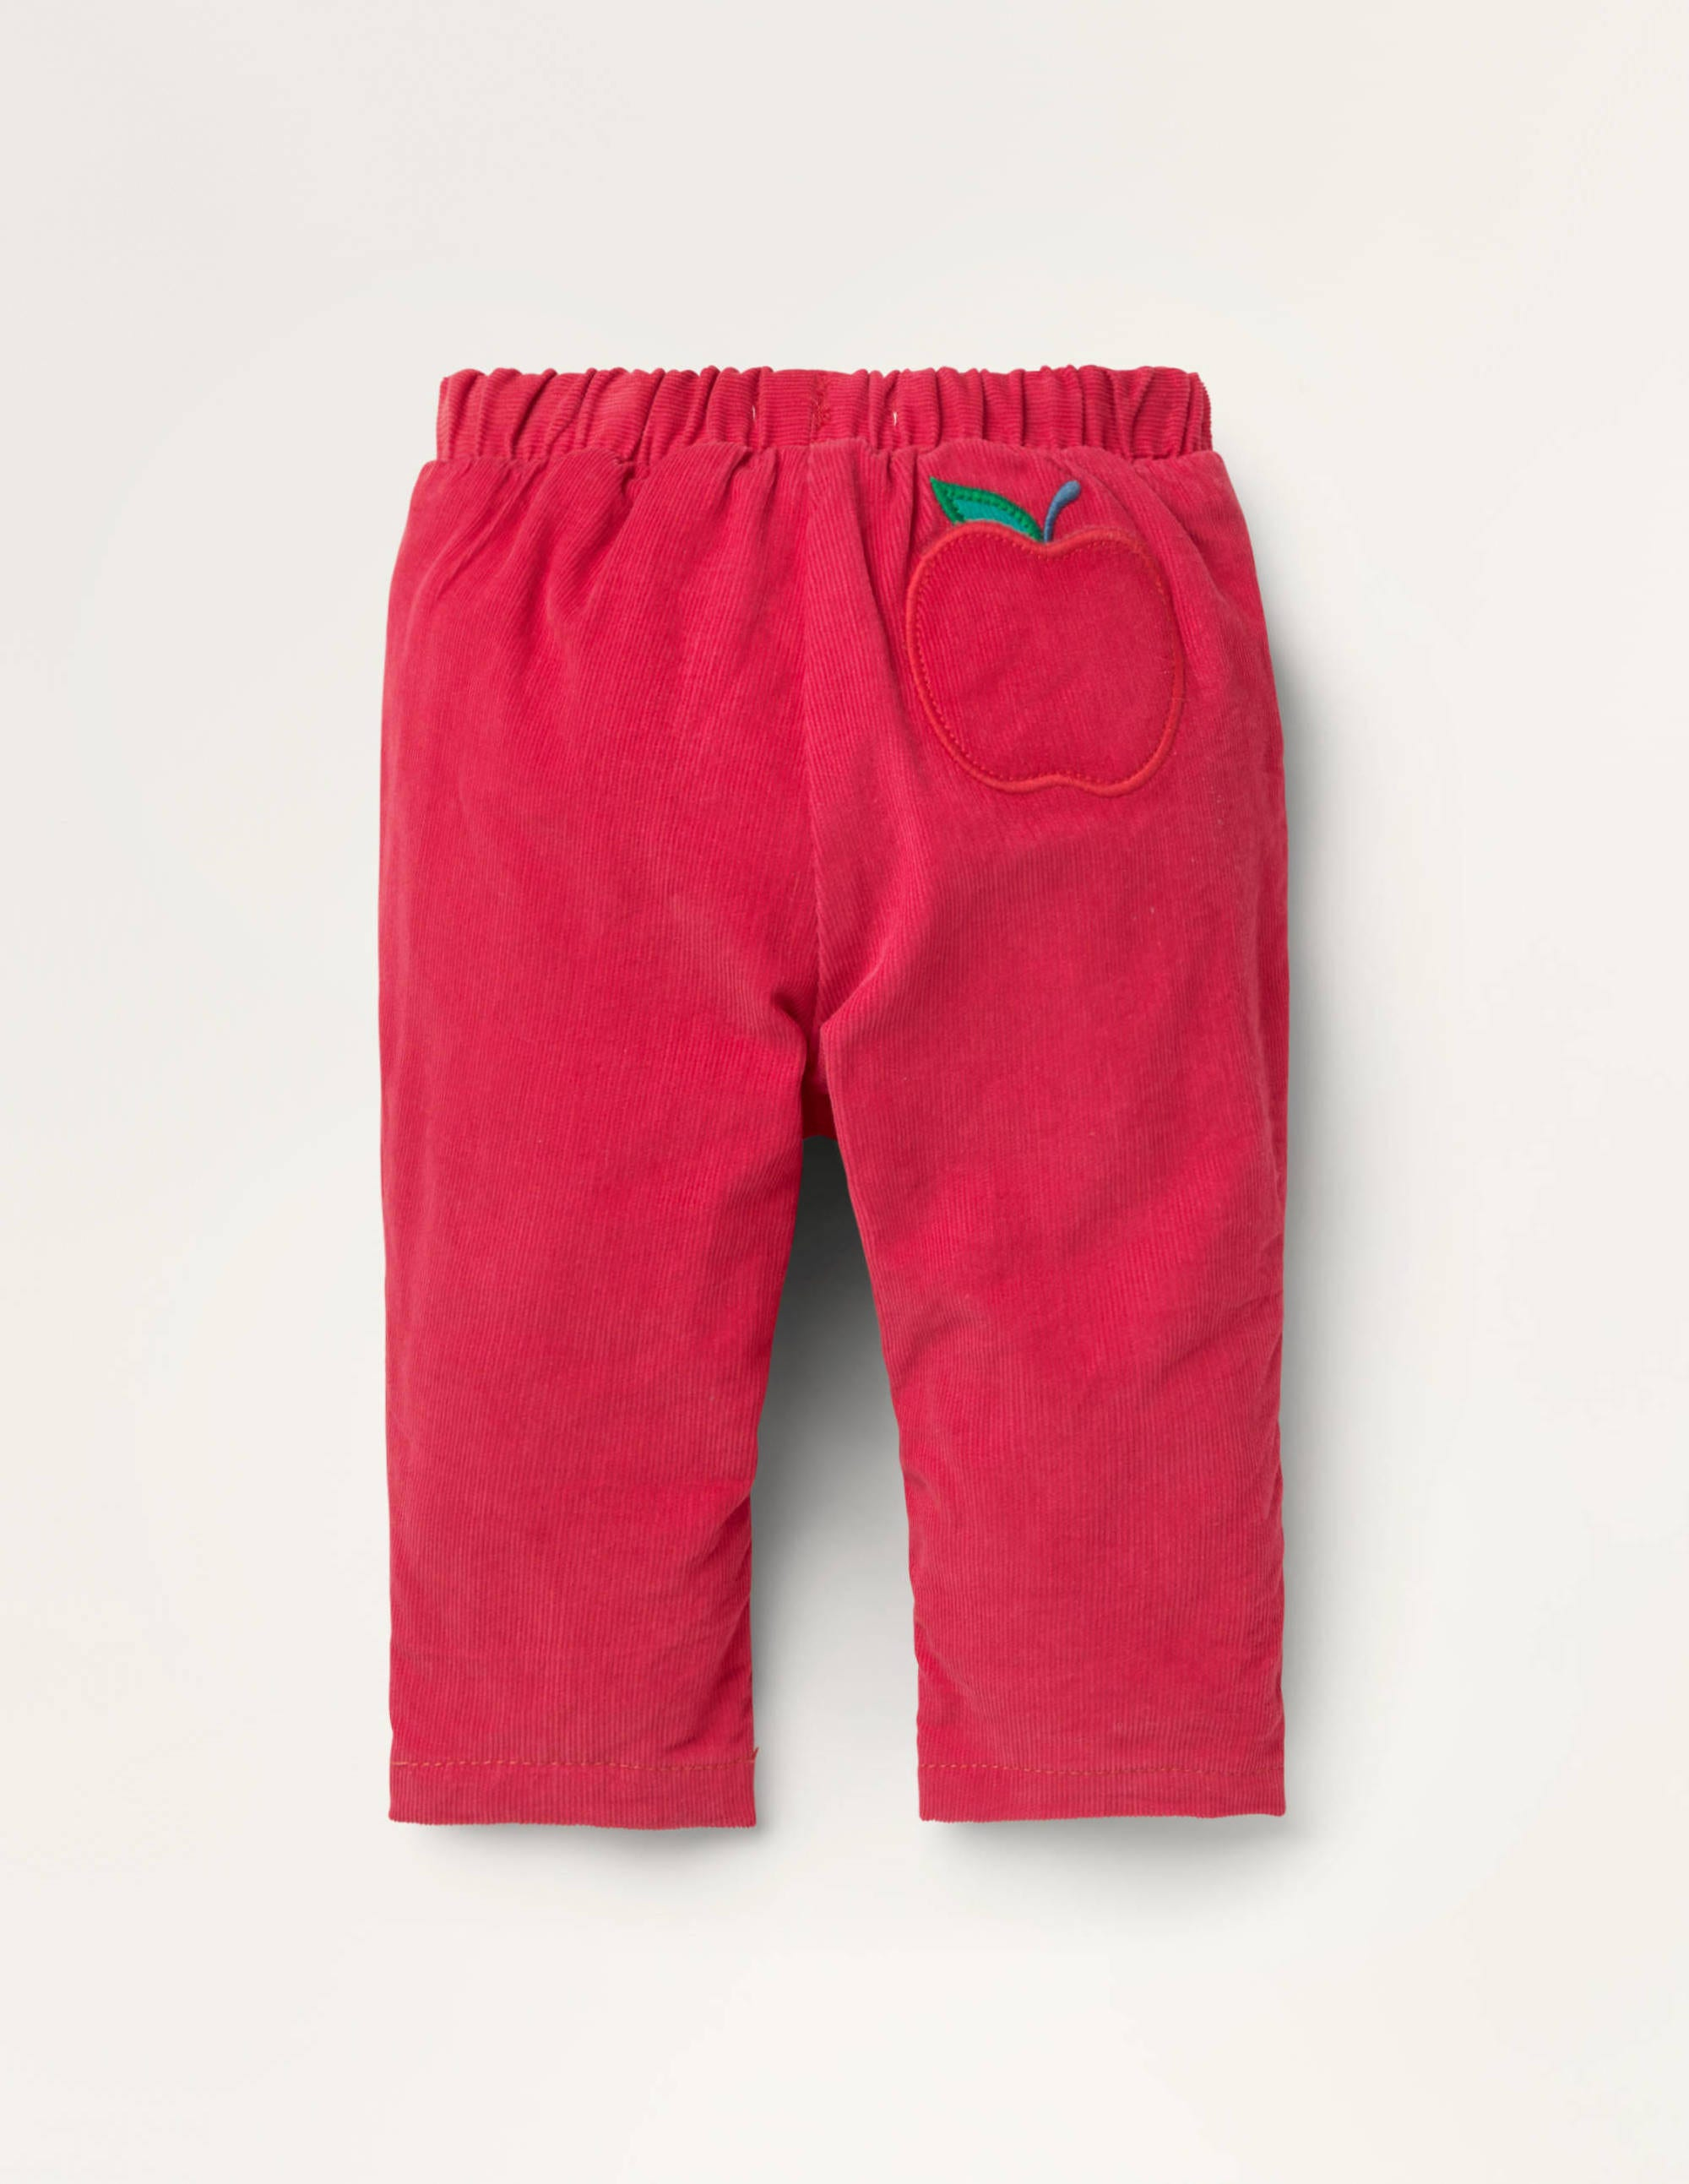 Boden Jersey-lined Cord Pants - Cherry Tomato Red Apples